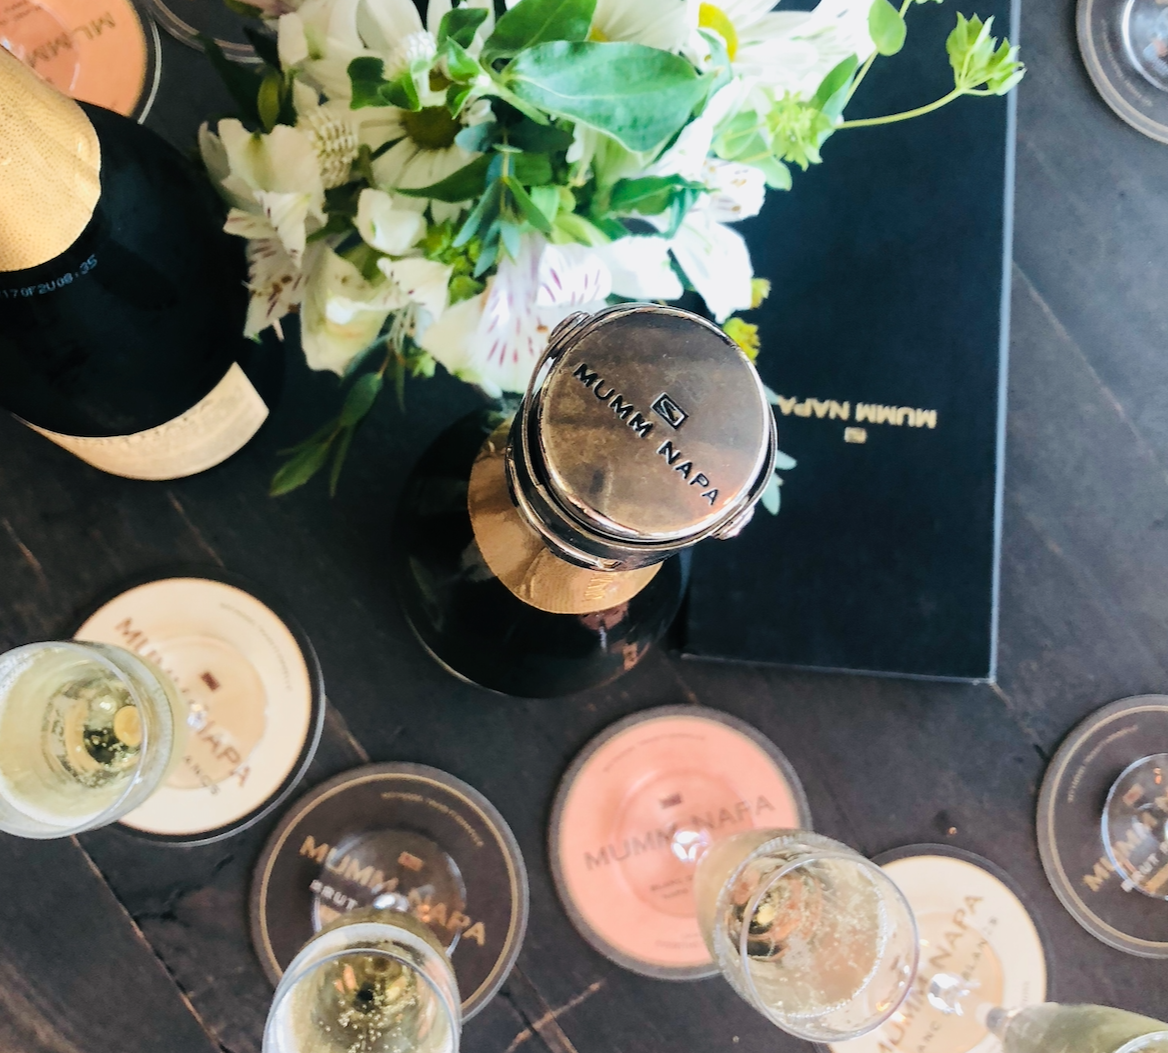 Link to Anuket Luxury Apothecary's Best of Bubbly Blog Post